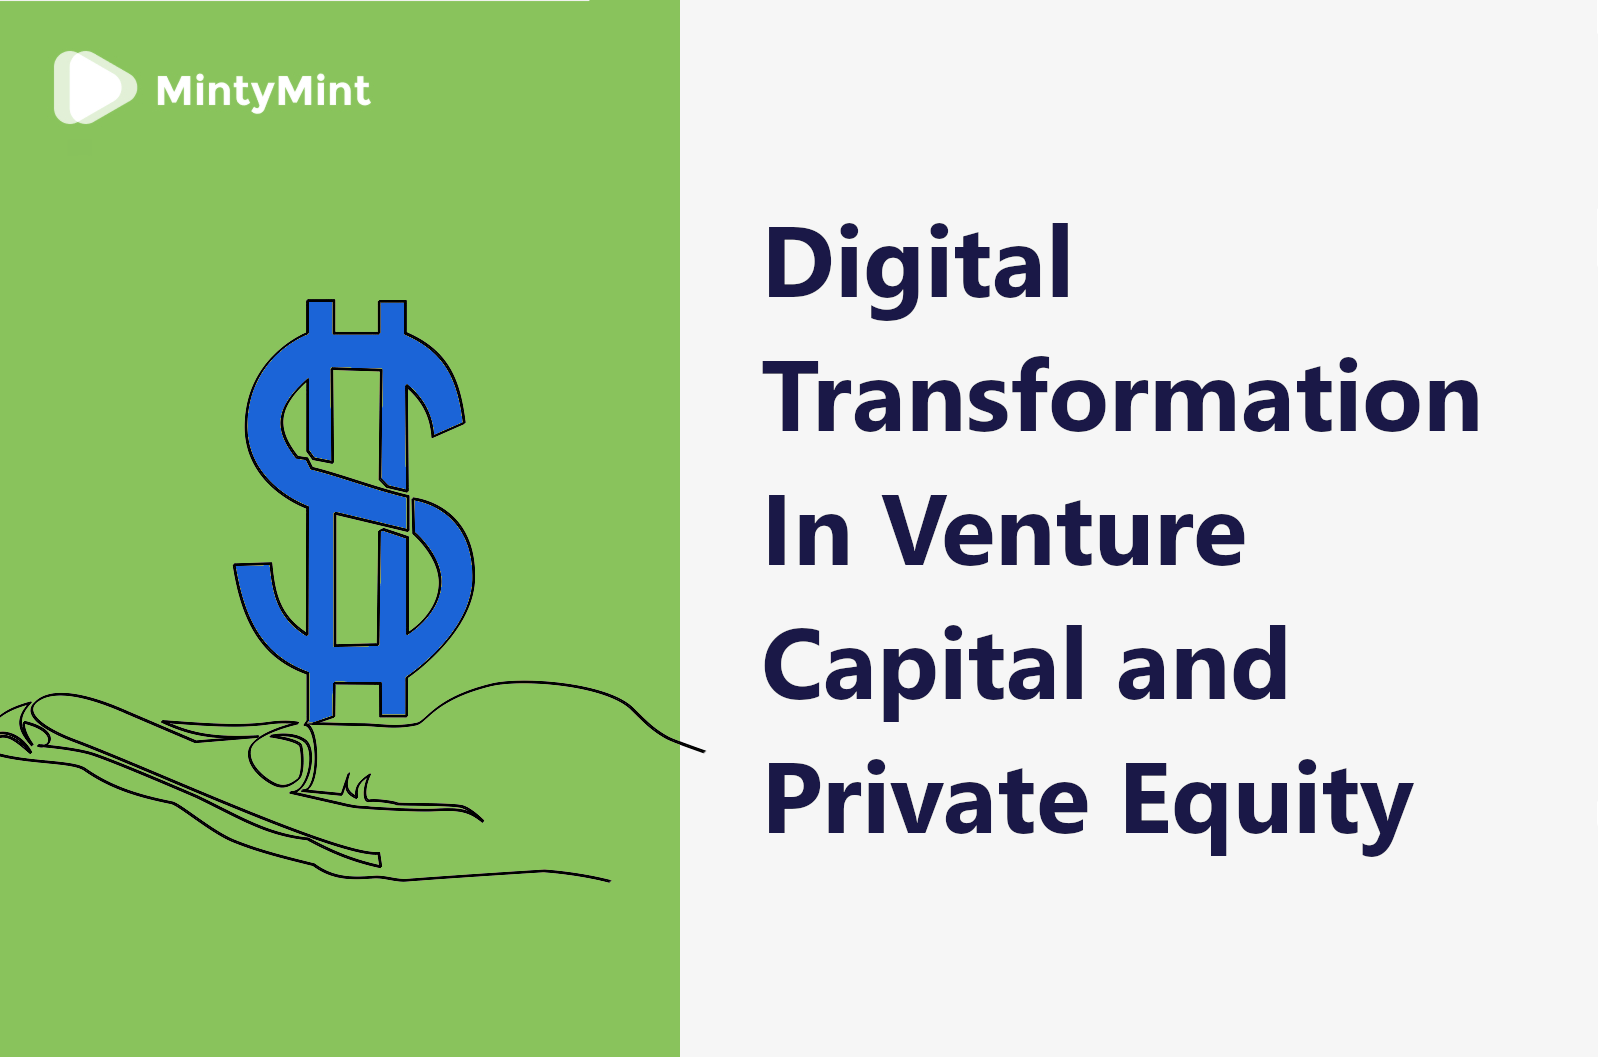 Venture Capital and Private Equity Cover